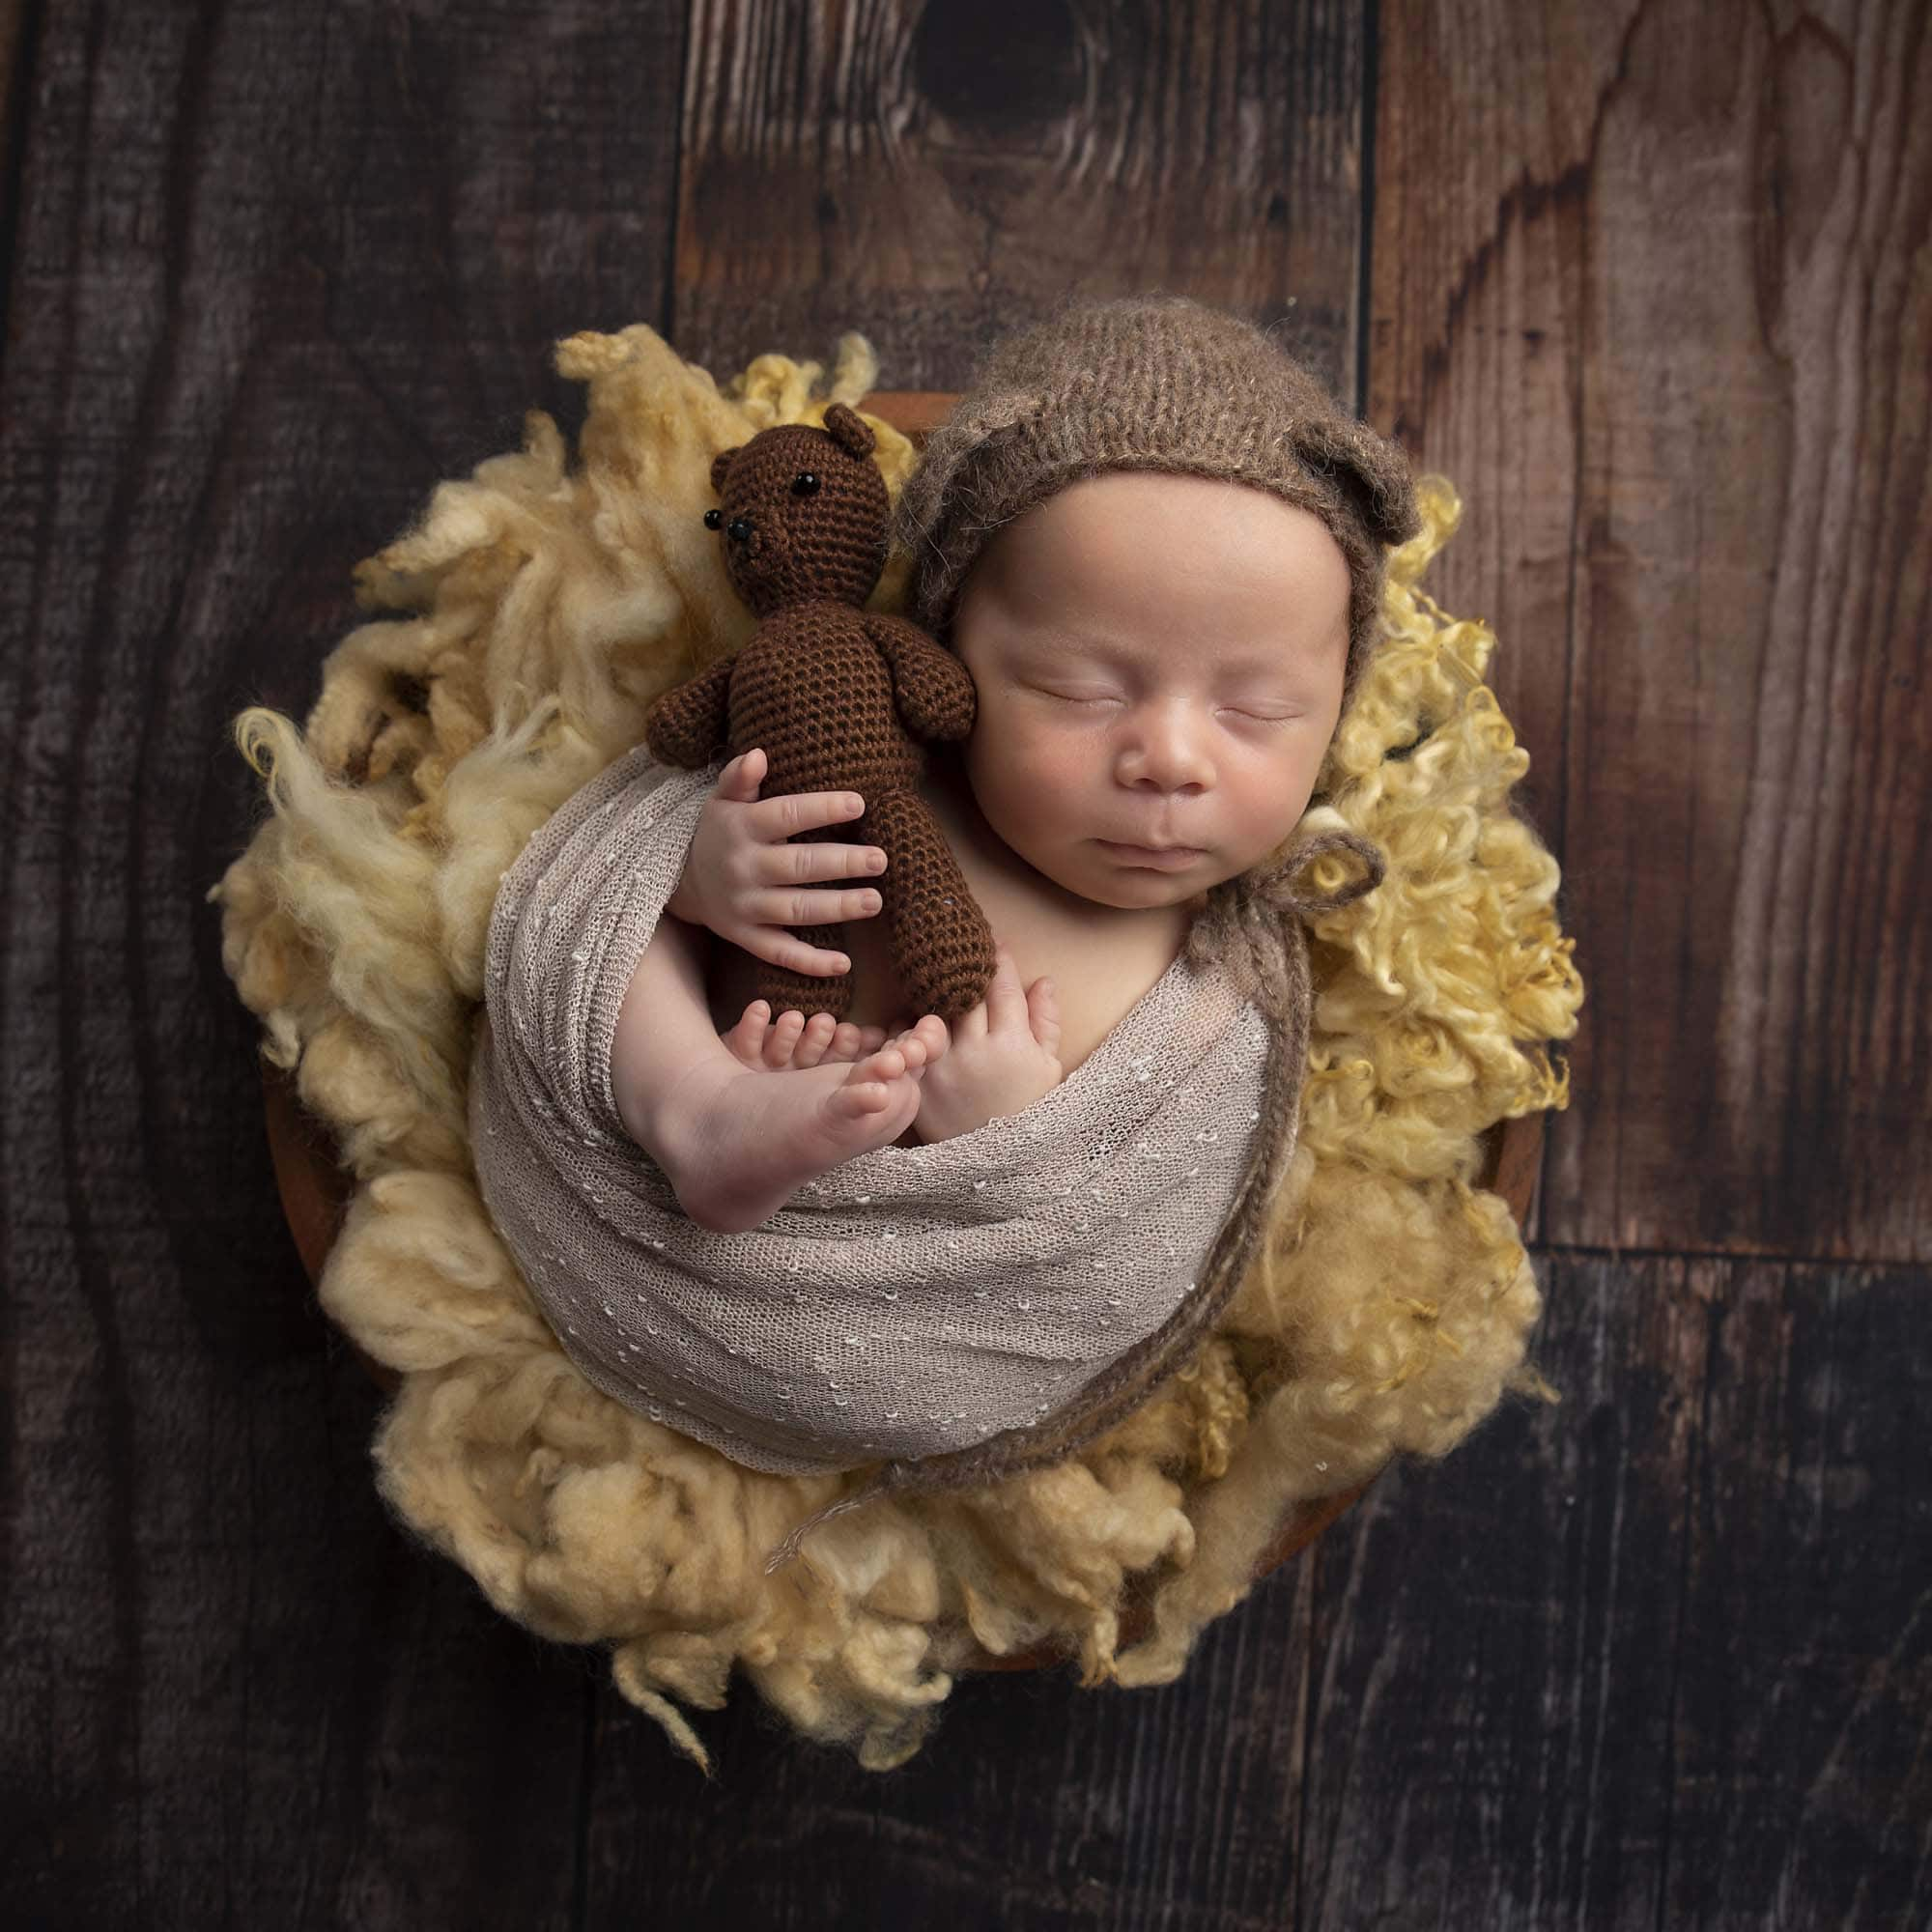 newborn boy with teddy toy in basket photographed by Newborn Photographer Cheshire